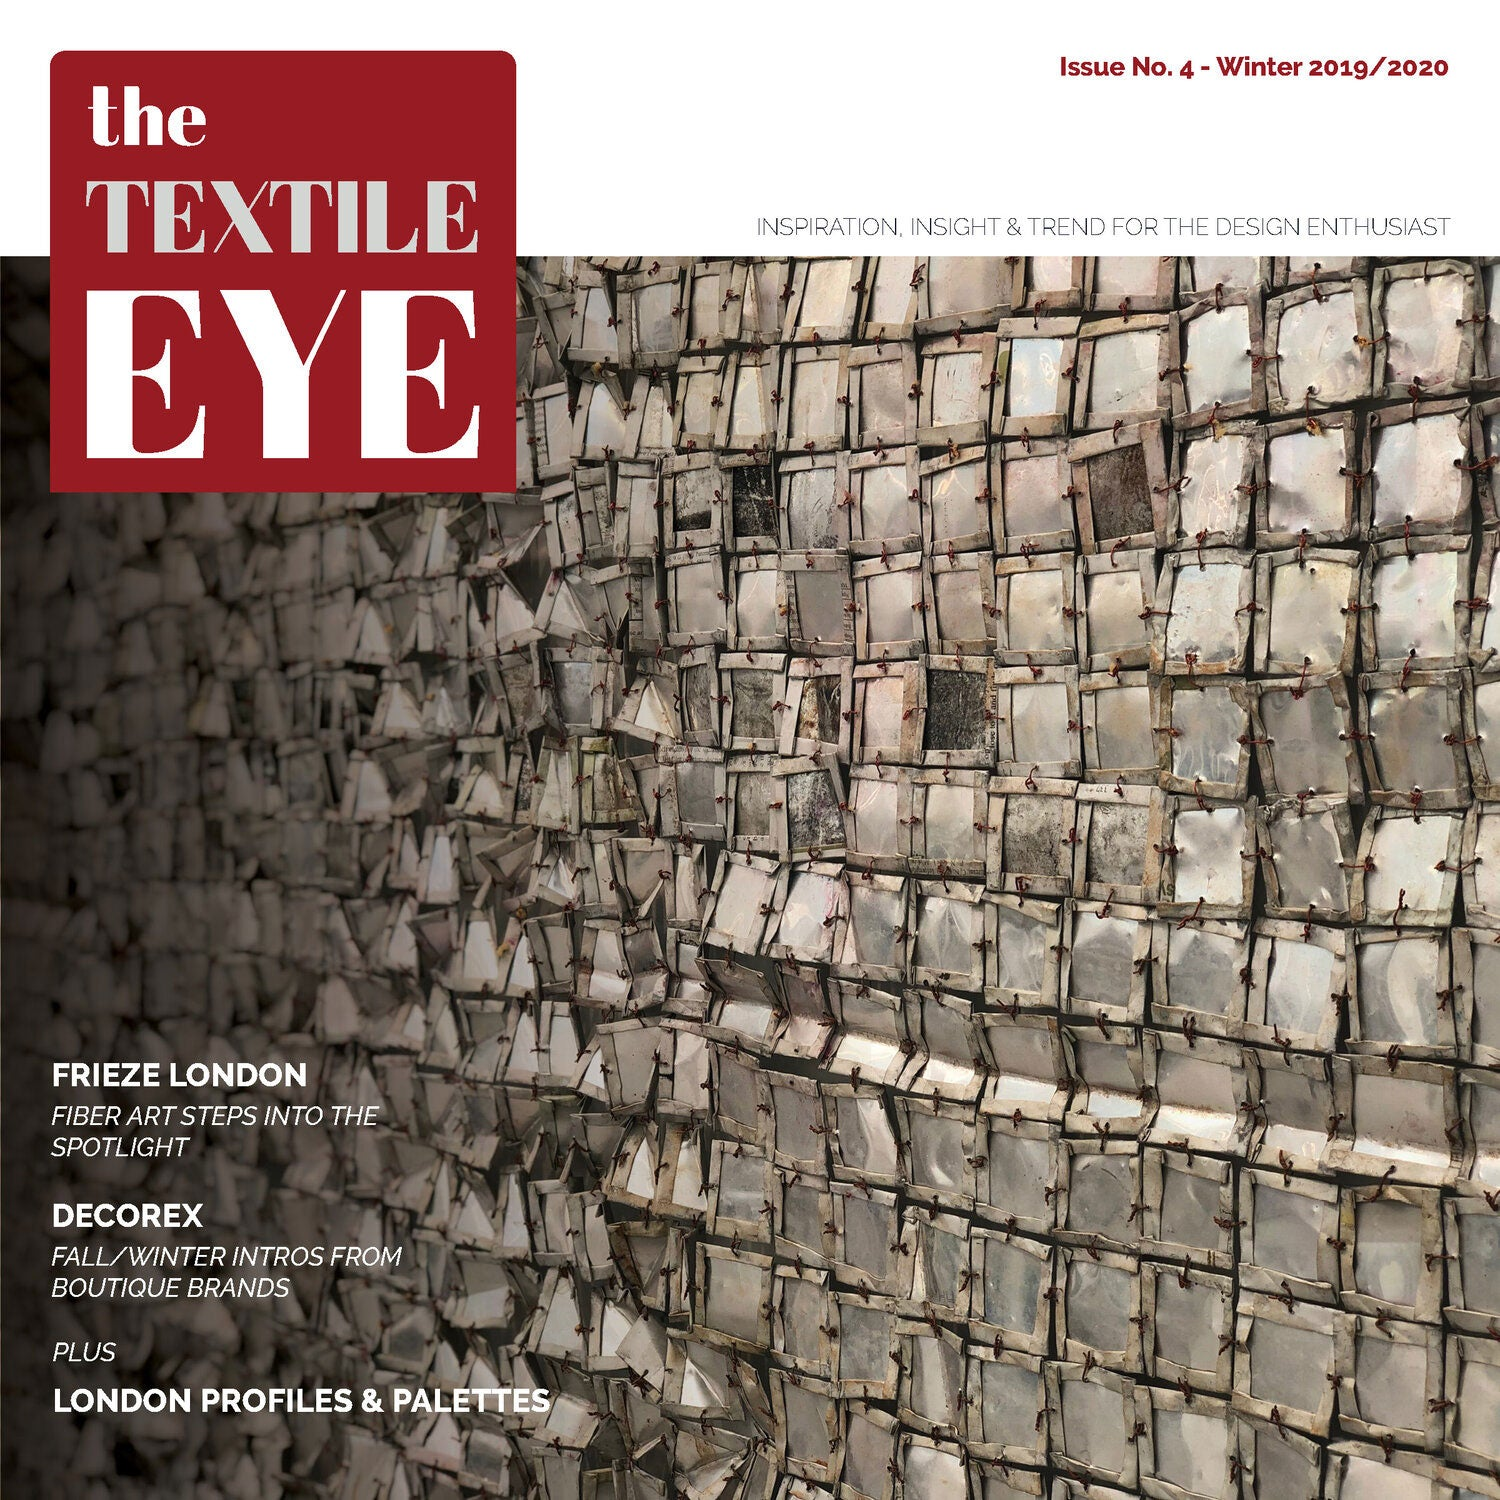 Textile Eye Winter 2019/2020